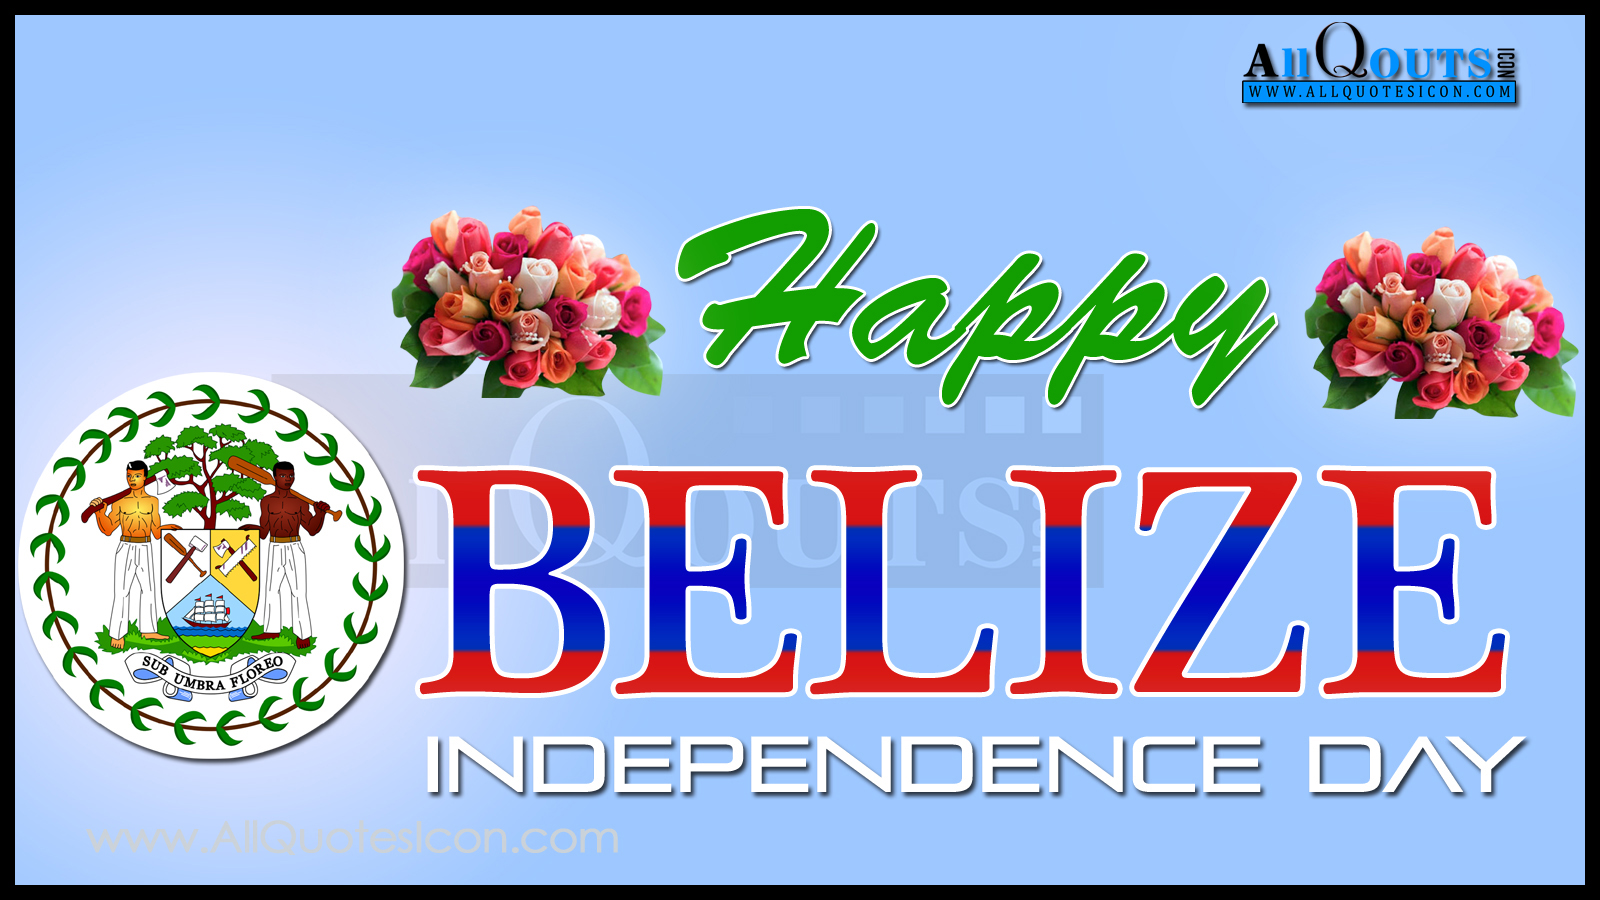 Happy independence day greetings images and hd wallpapers about here is a happy independence day wishes happy independence day greetingsbelize independence day kristyandbryce Gallery